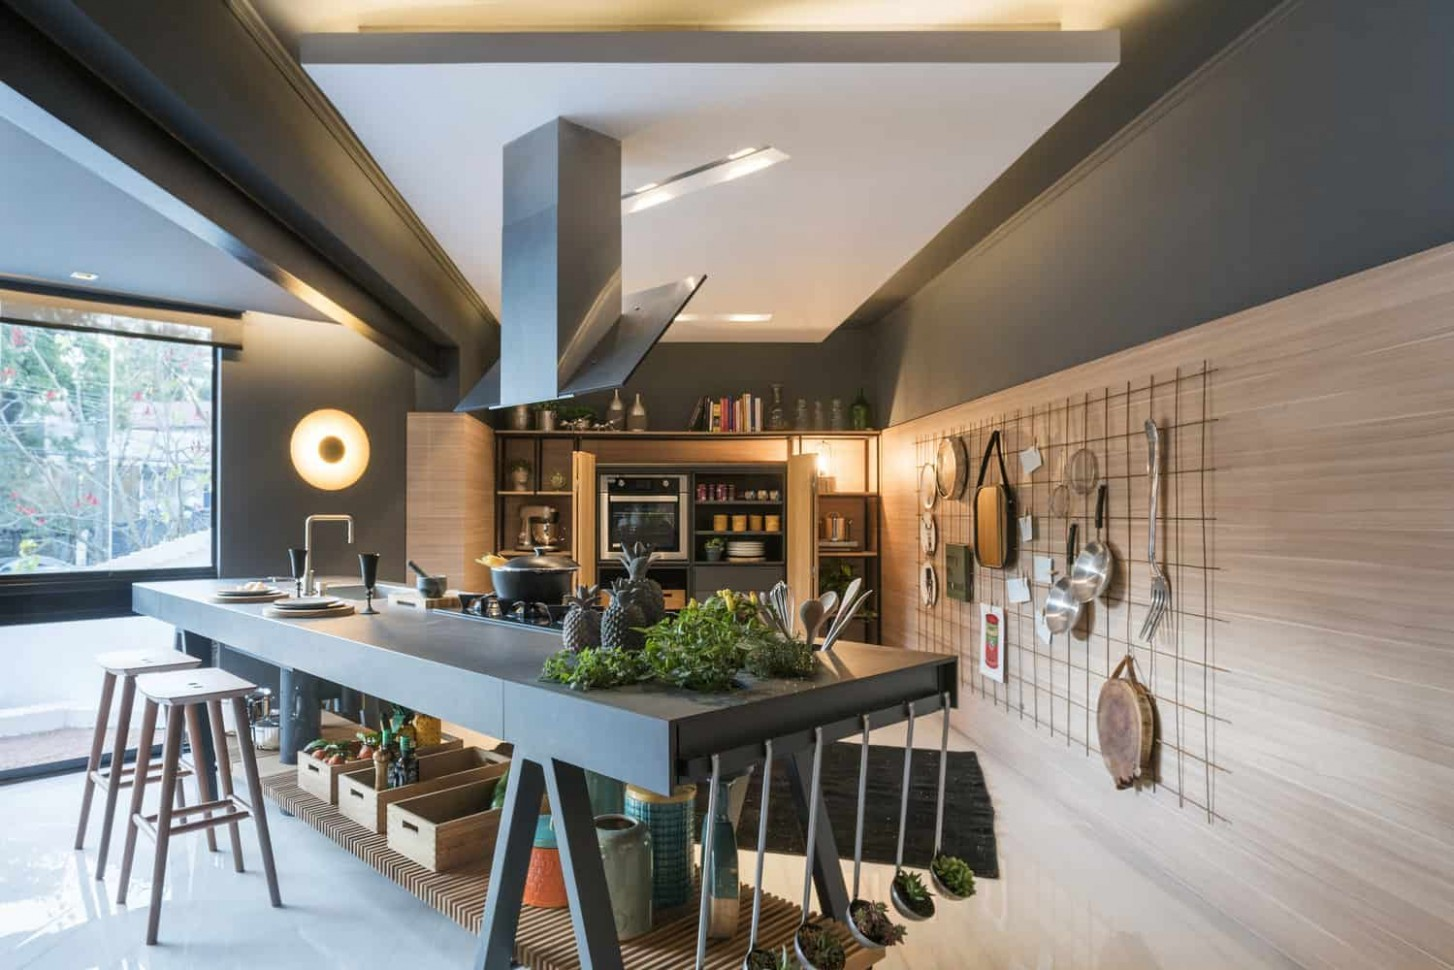 Example of a Great Kitchen without Cabinets and Counters (with  - Kitchen Design Without Cabinets